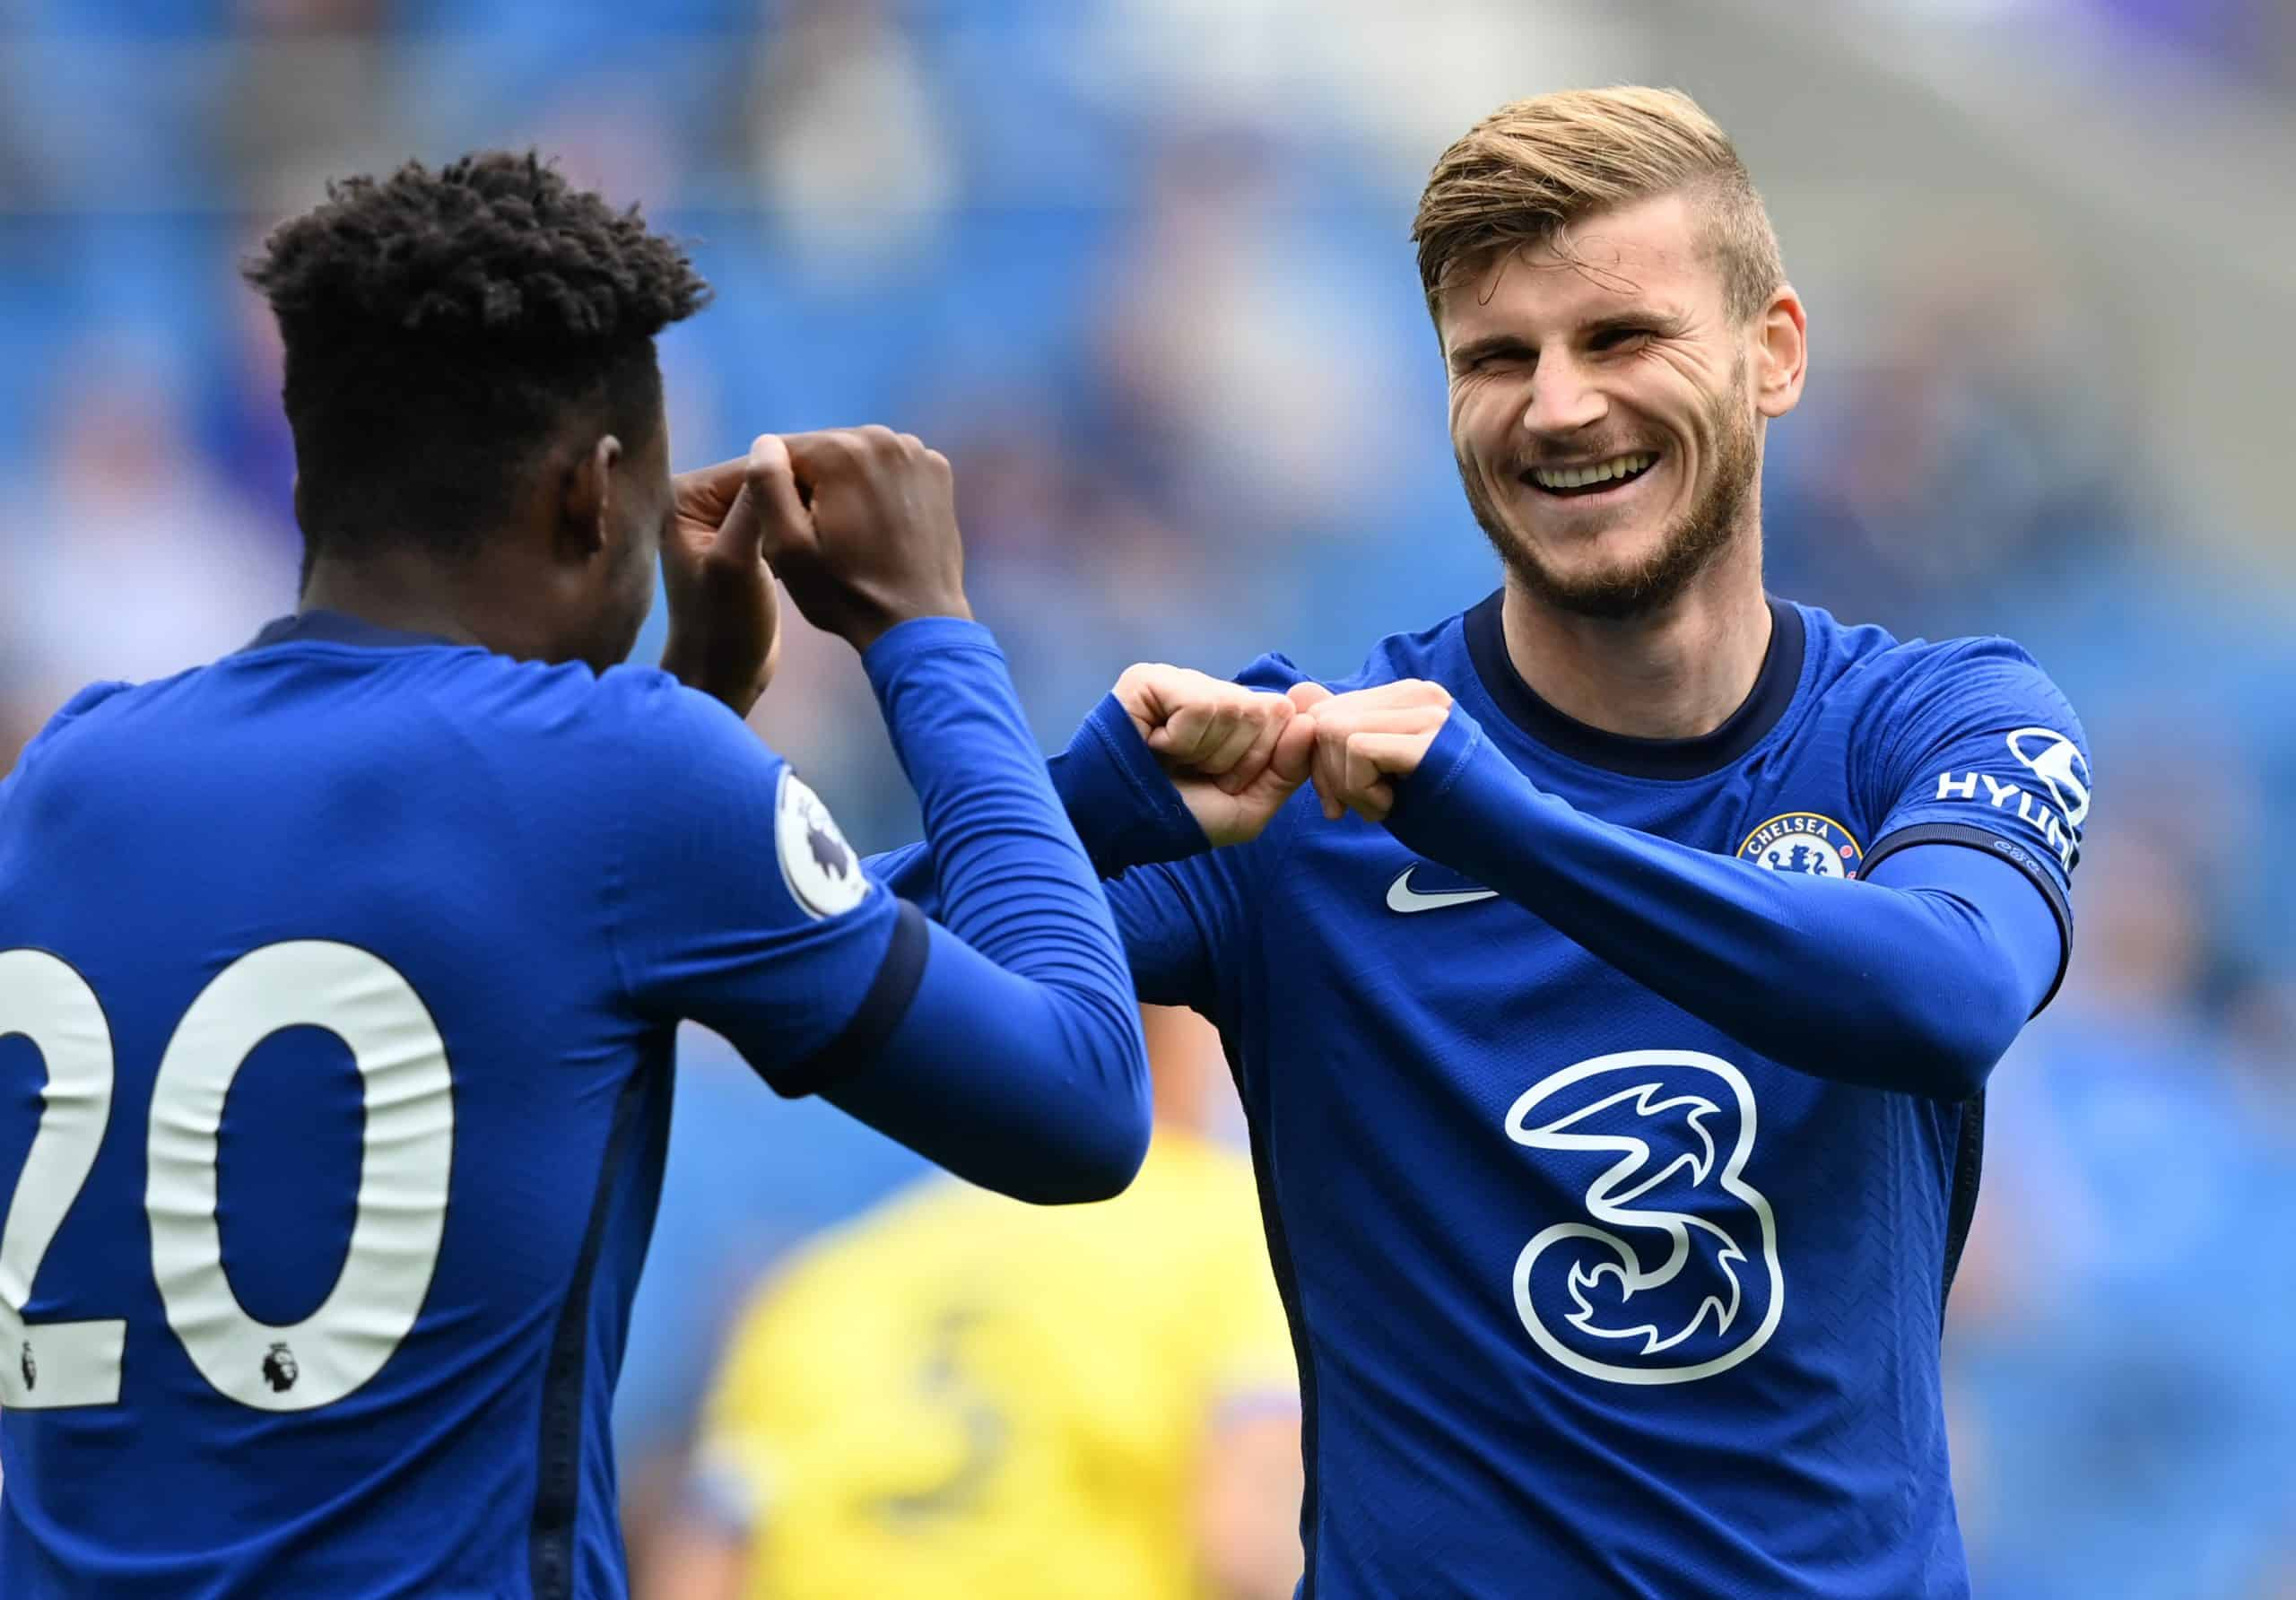 Timo Werner admits to doubts over Chelsea transfer after Blues were hammered by Bayern Munich - 101 great goals